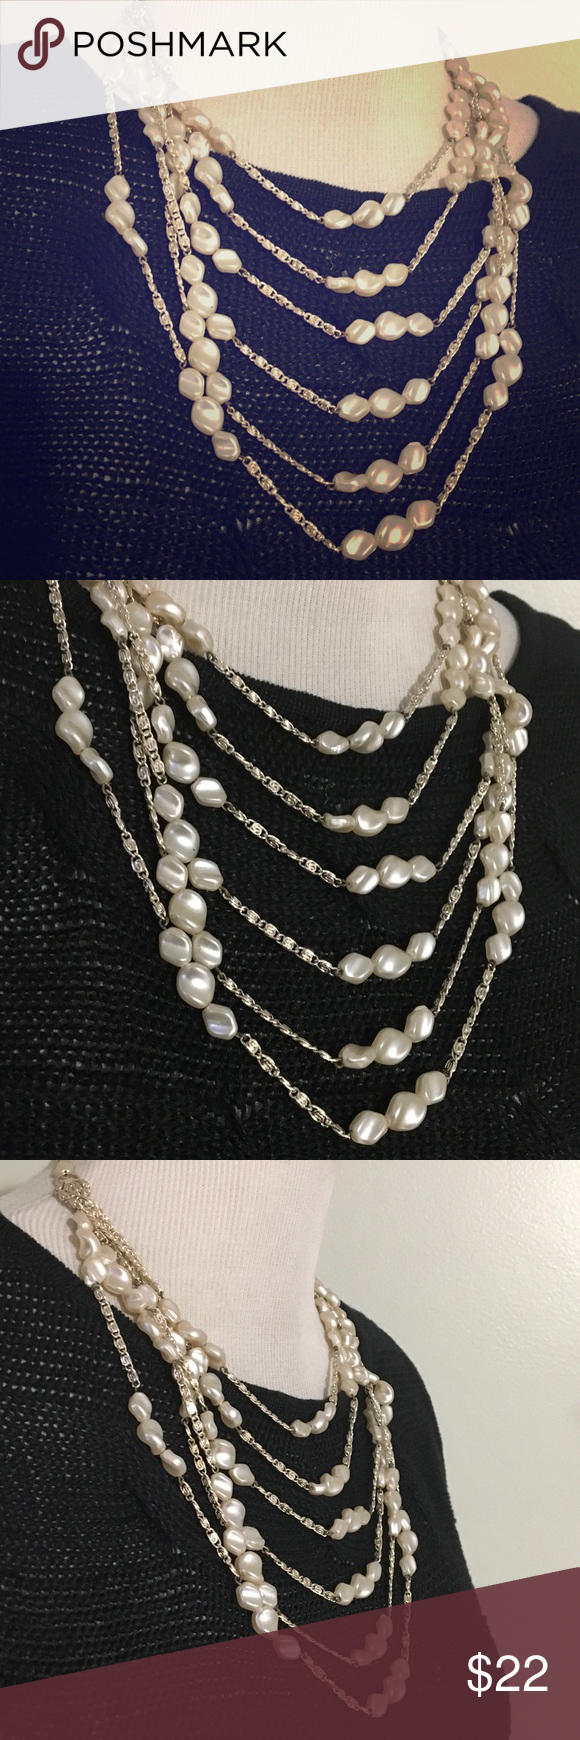 ELEGANT PEARLS NECKLACE Gorgeous and exquisite necklace , excellent condition, silver chain , it's very well made M.WESTGENAR Jewelry Necklaces